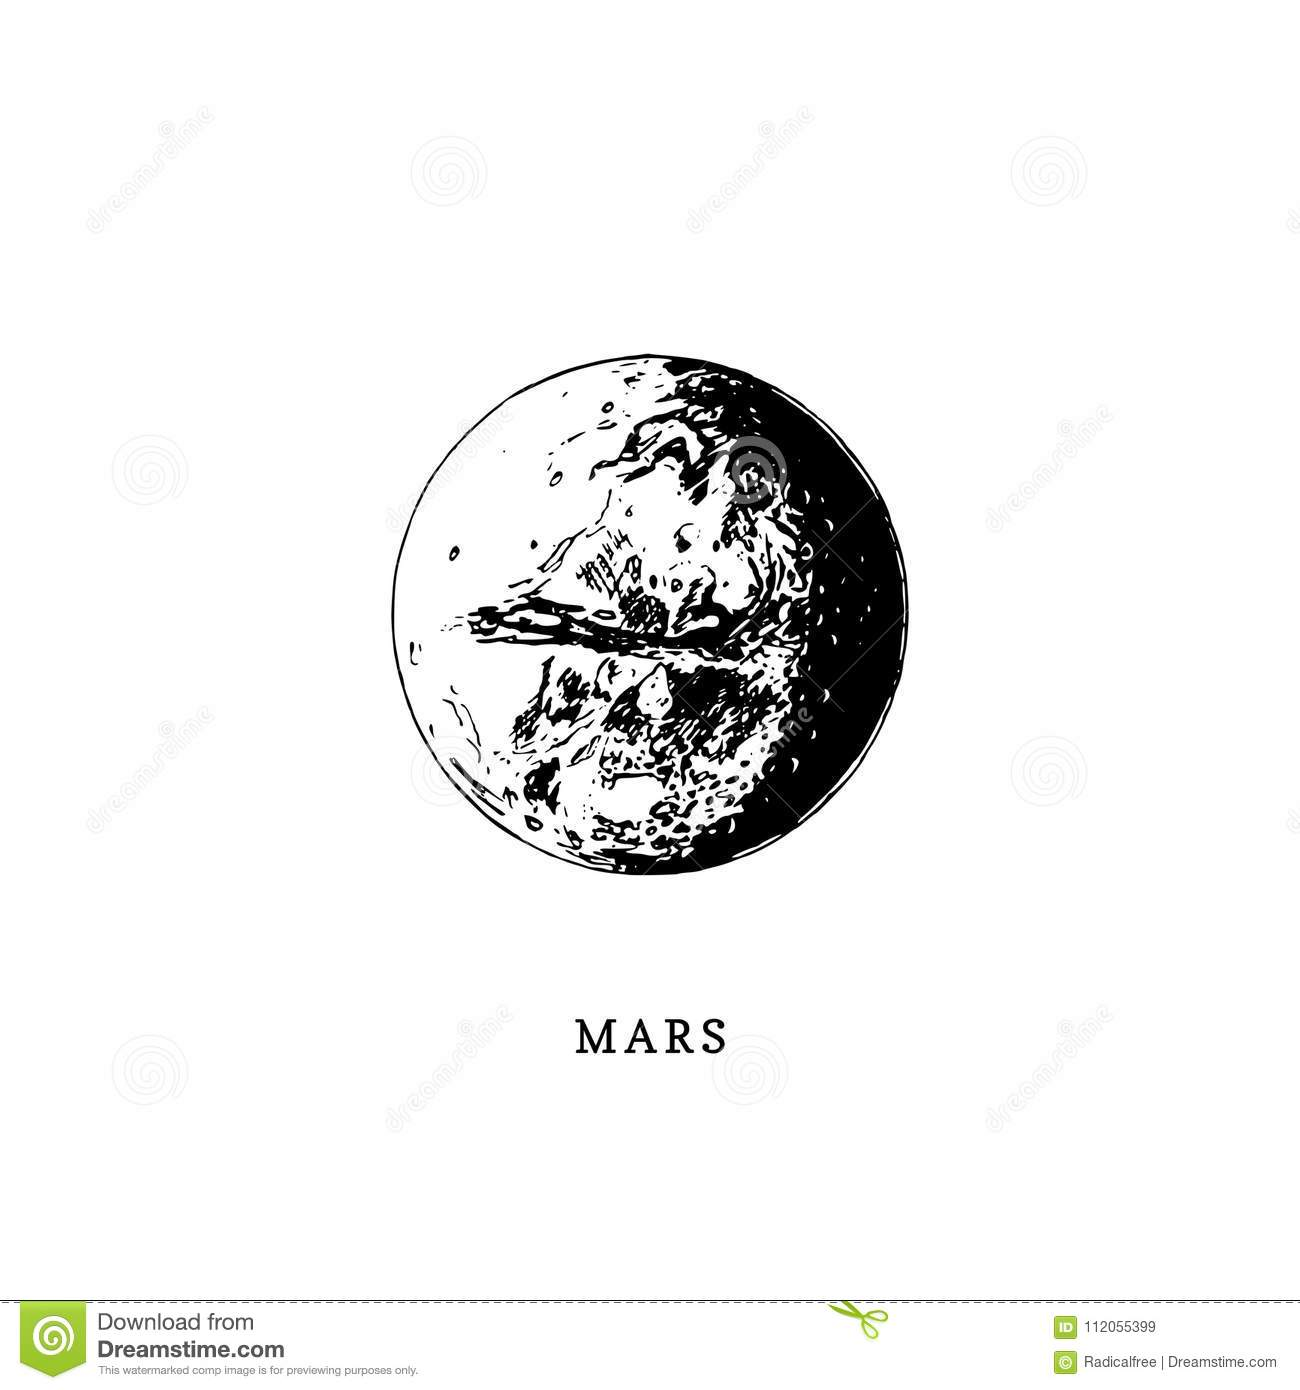 Mars Planet Image On White Background. Hand Drawn Vector ...